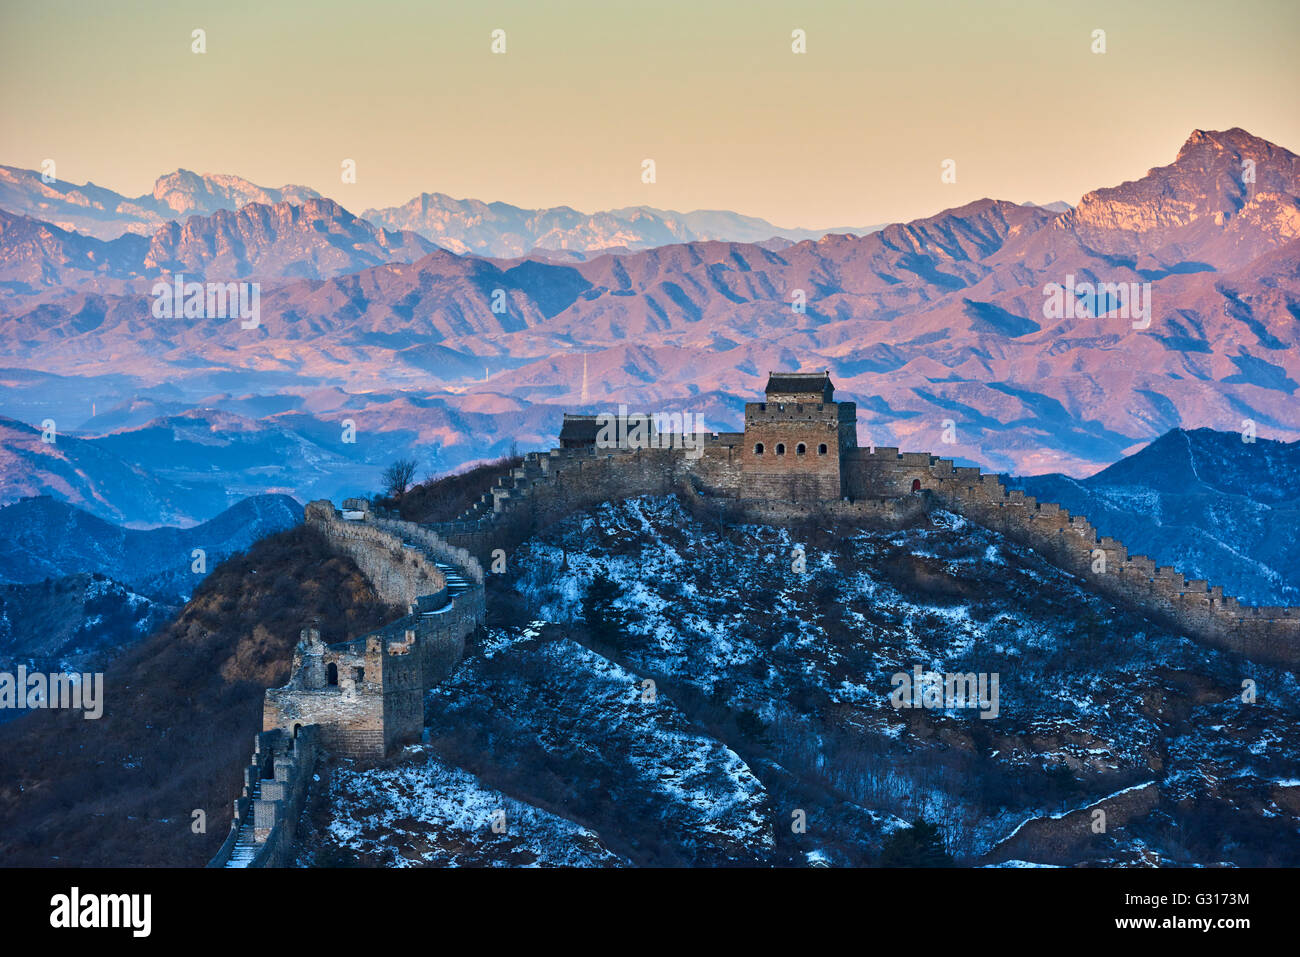 China, Hebei province, Great Wall of China, Jinshanling and Simatai section, Unesco World Heritage - Stock Image